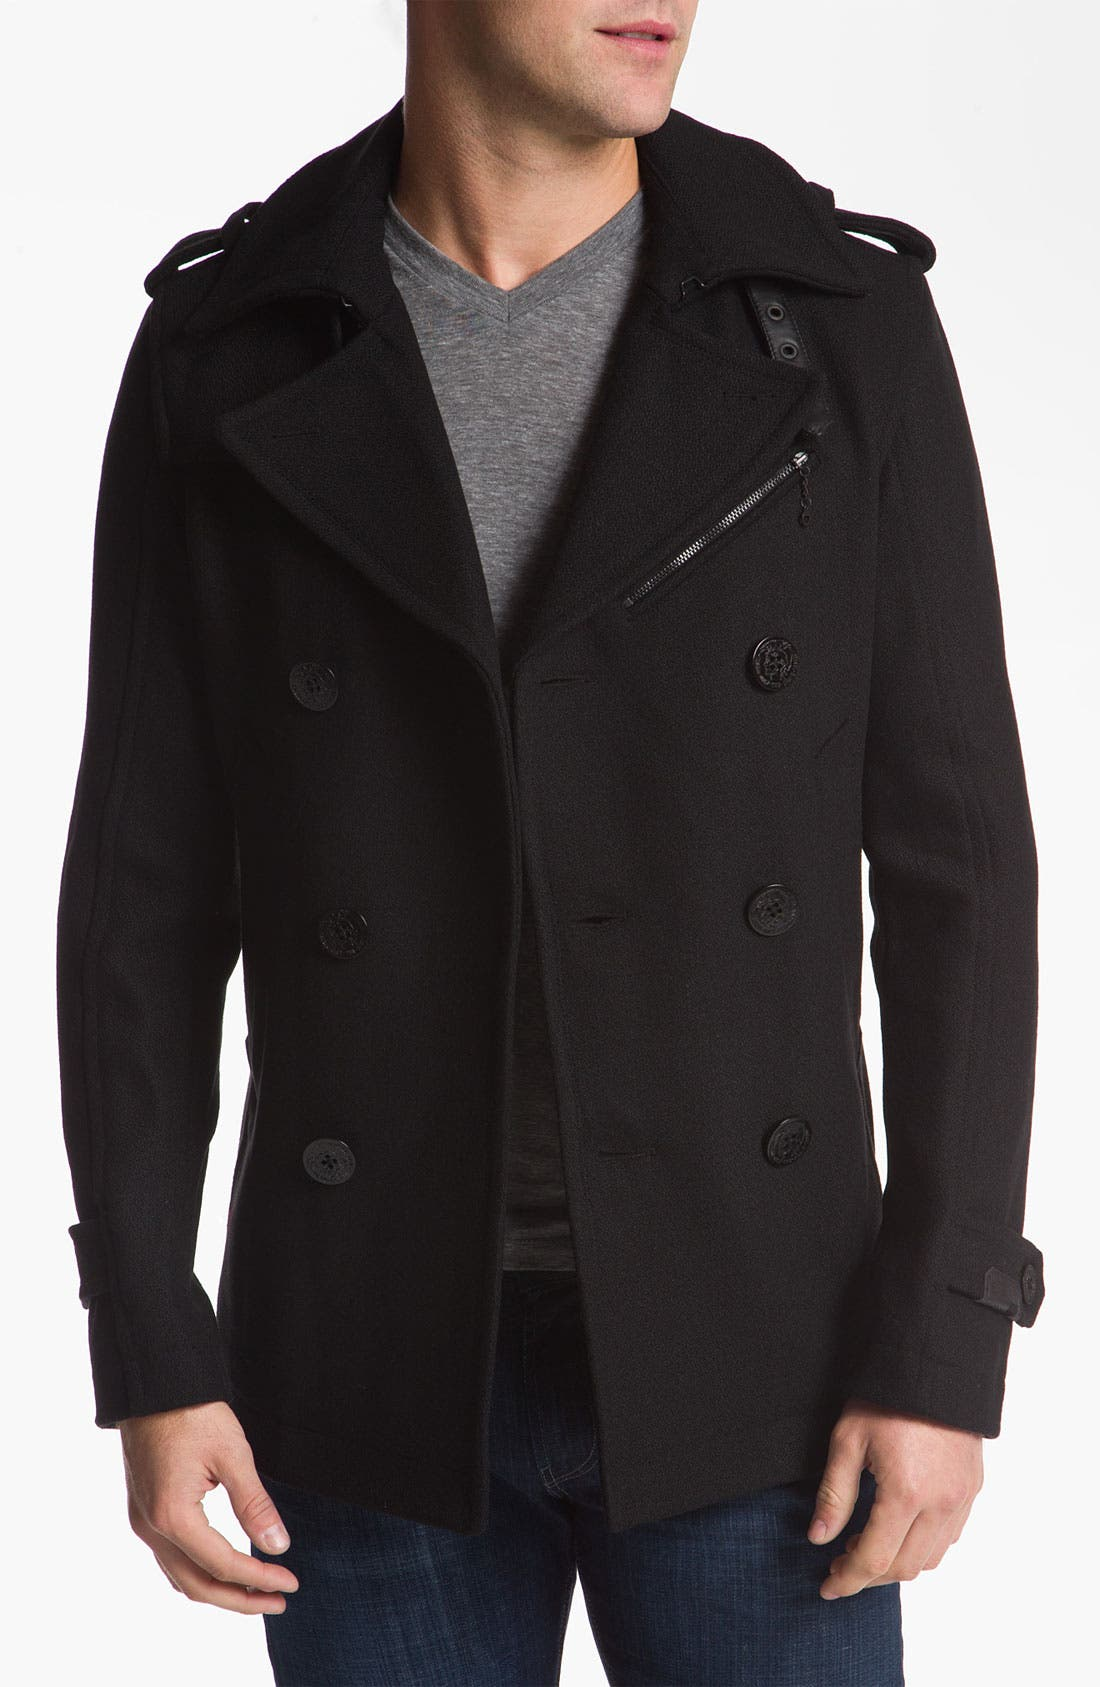 'Wittory' Double Breasted Peacoat,                             Main thumbnail 1, color,                             Black